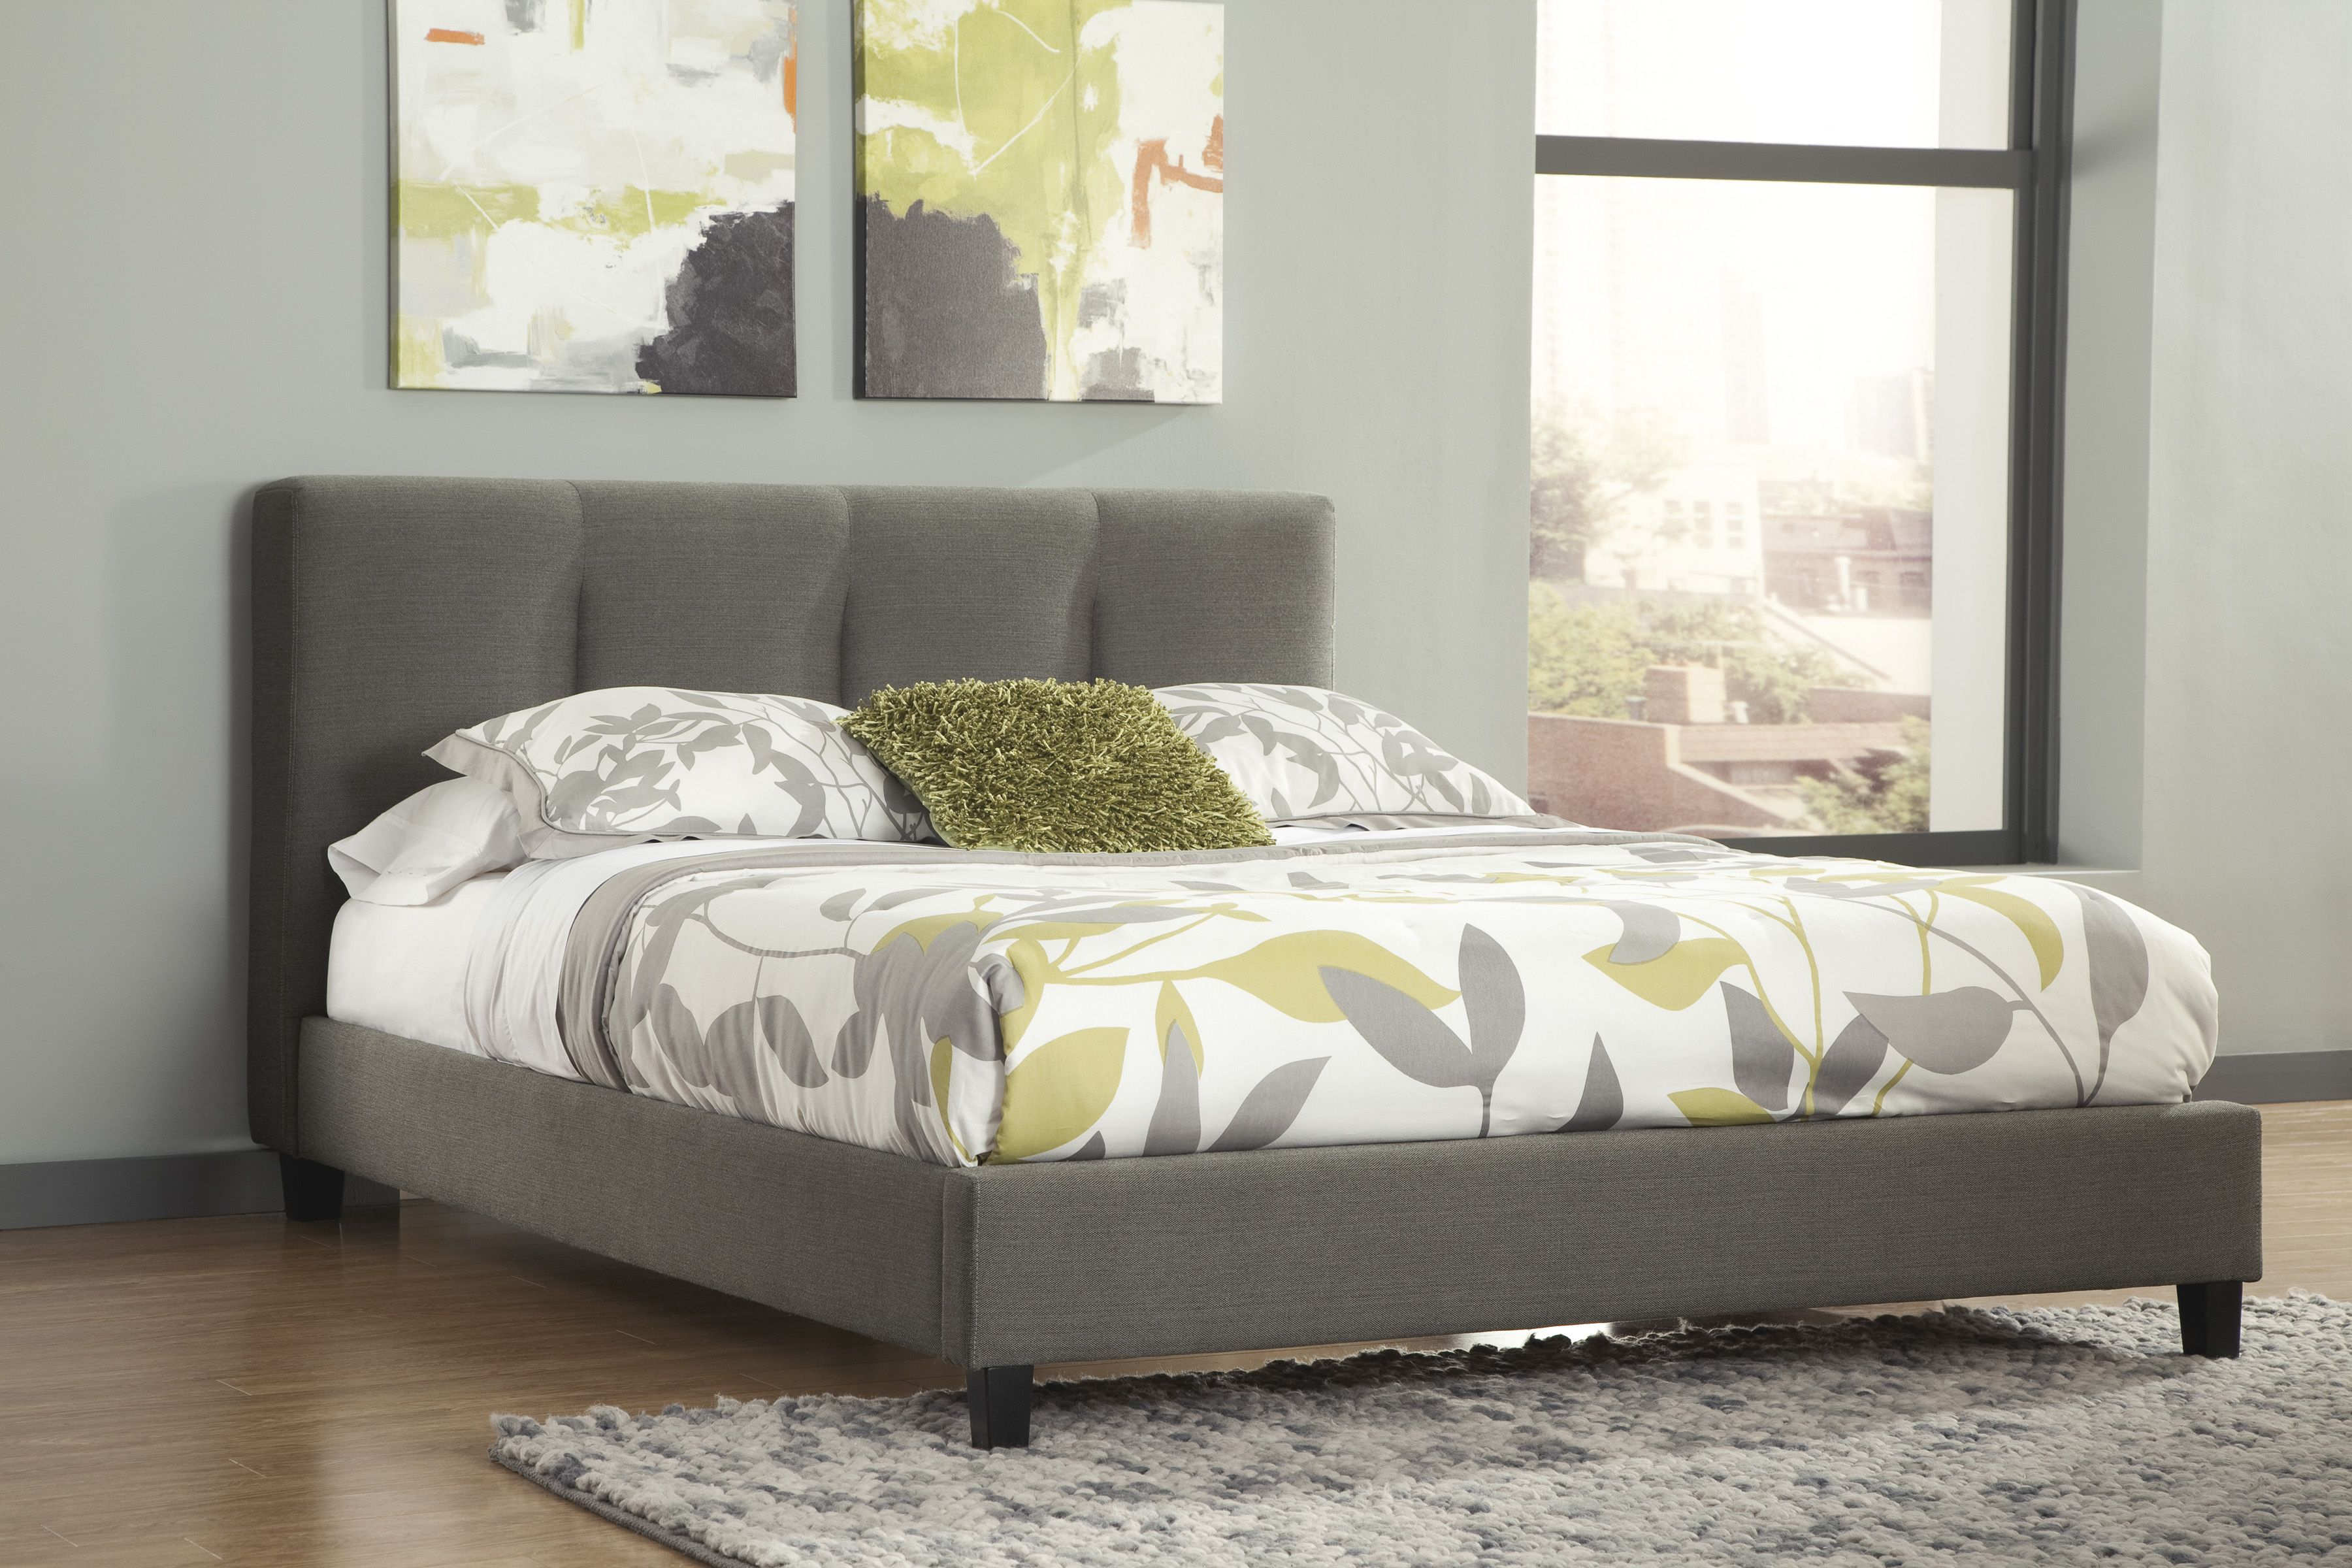 How soft and comfortable #bed in your #room ! #Ashley #